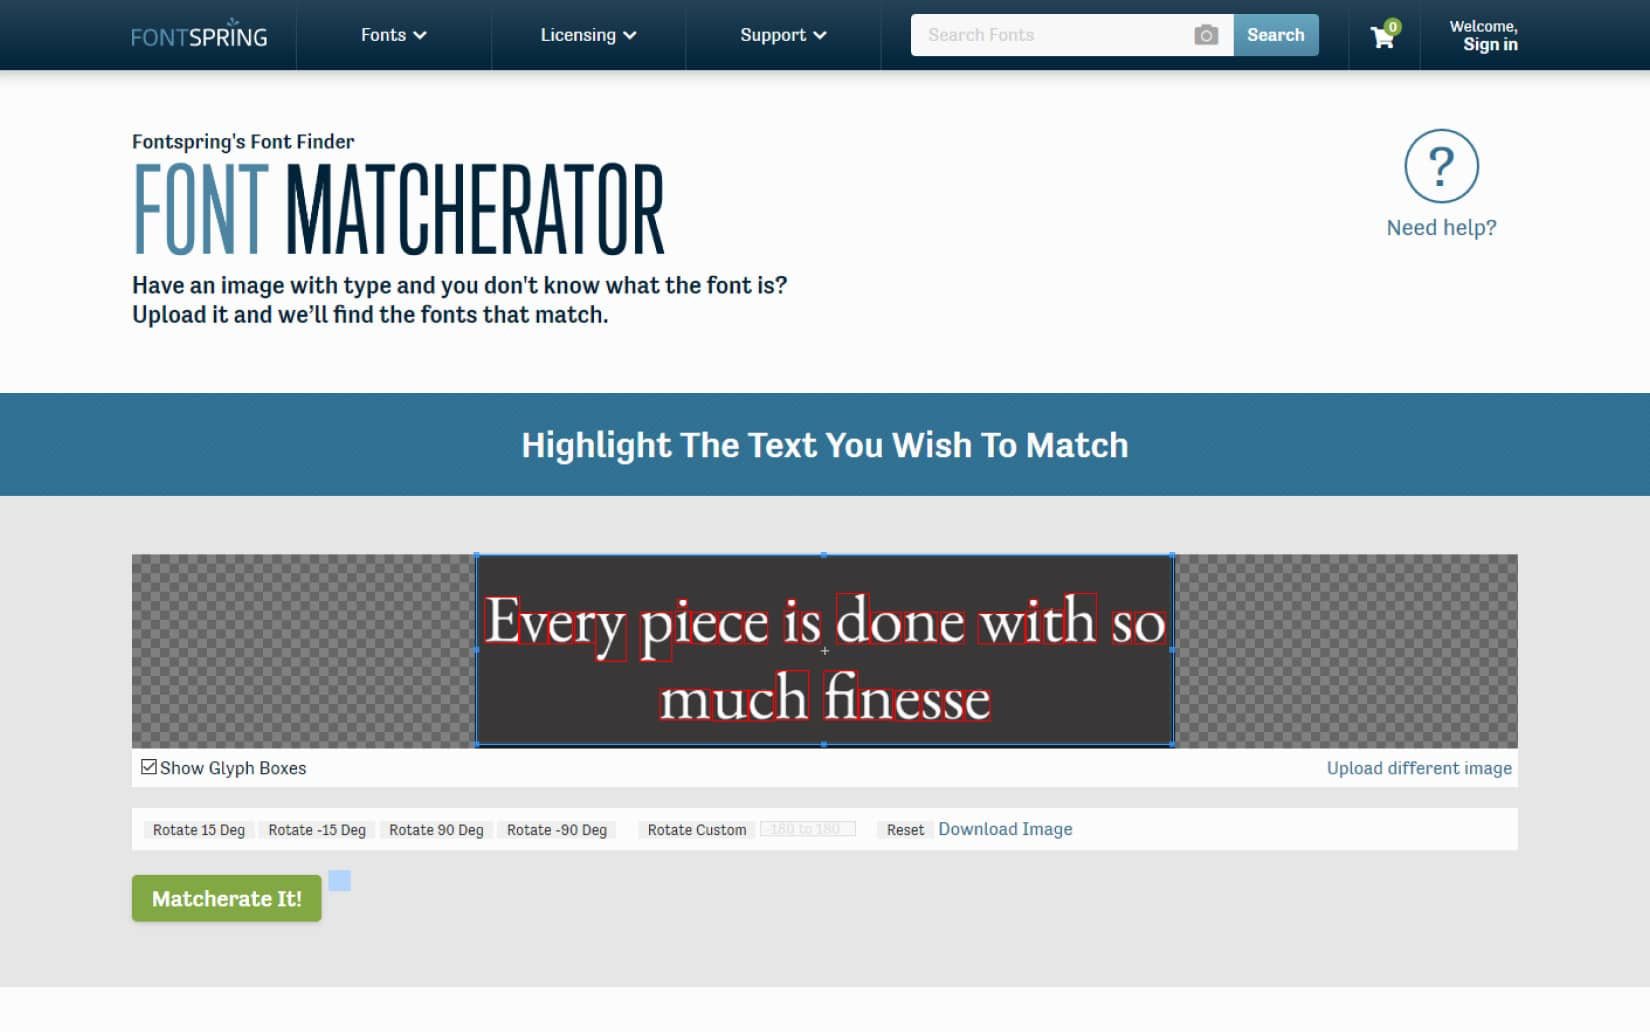 What font is this How to Identify a font 2021 Font Matcherator 2